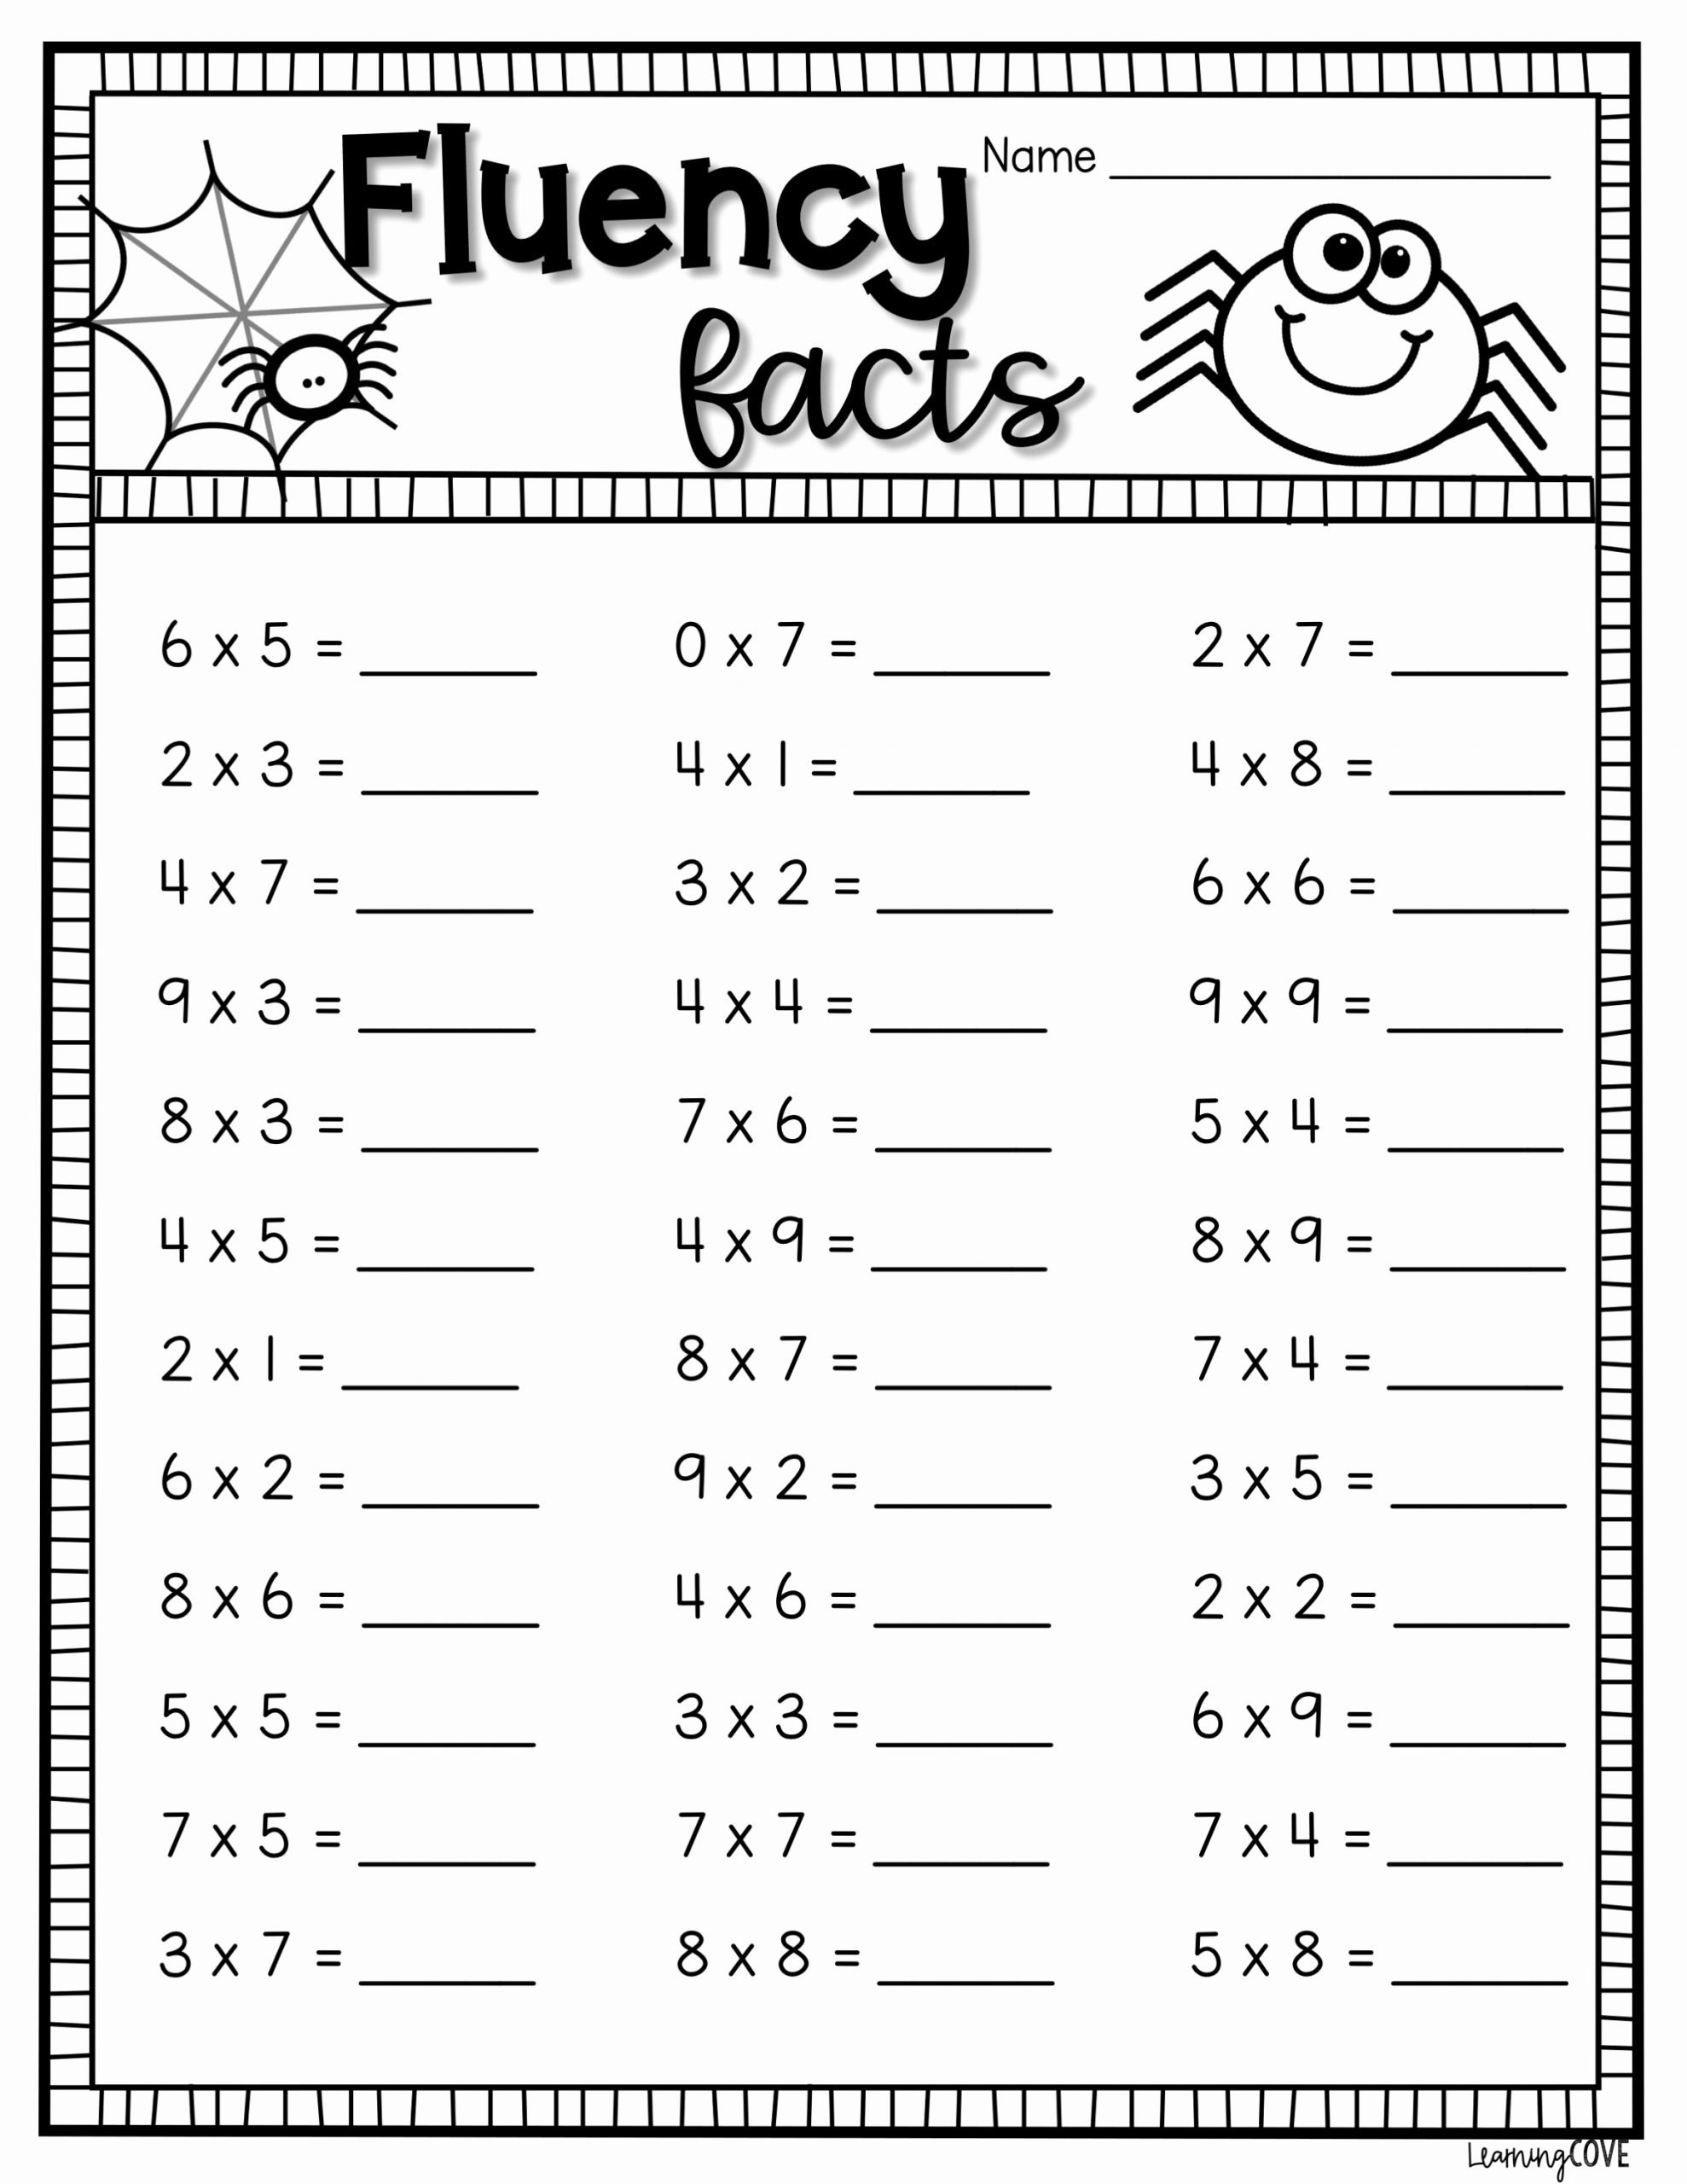 Multiplication Worksheets Halloween Inspirational Halloween Multiplication Worksheets In 2020